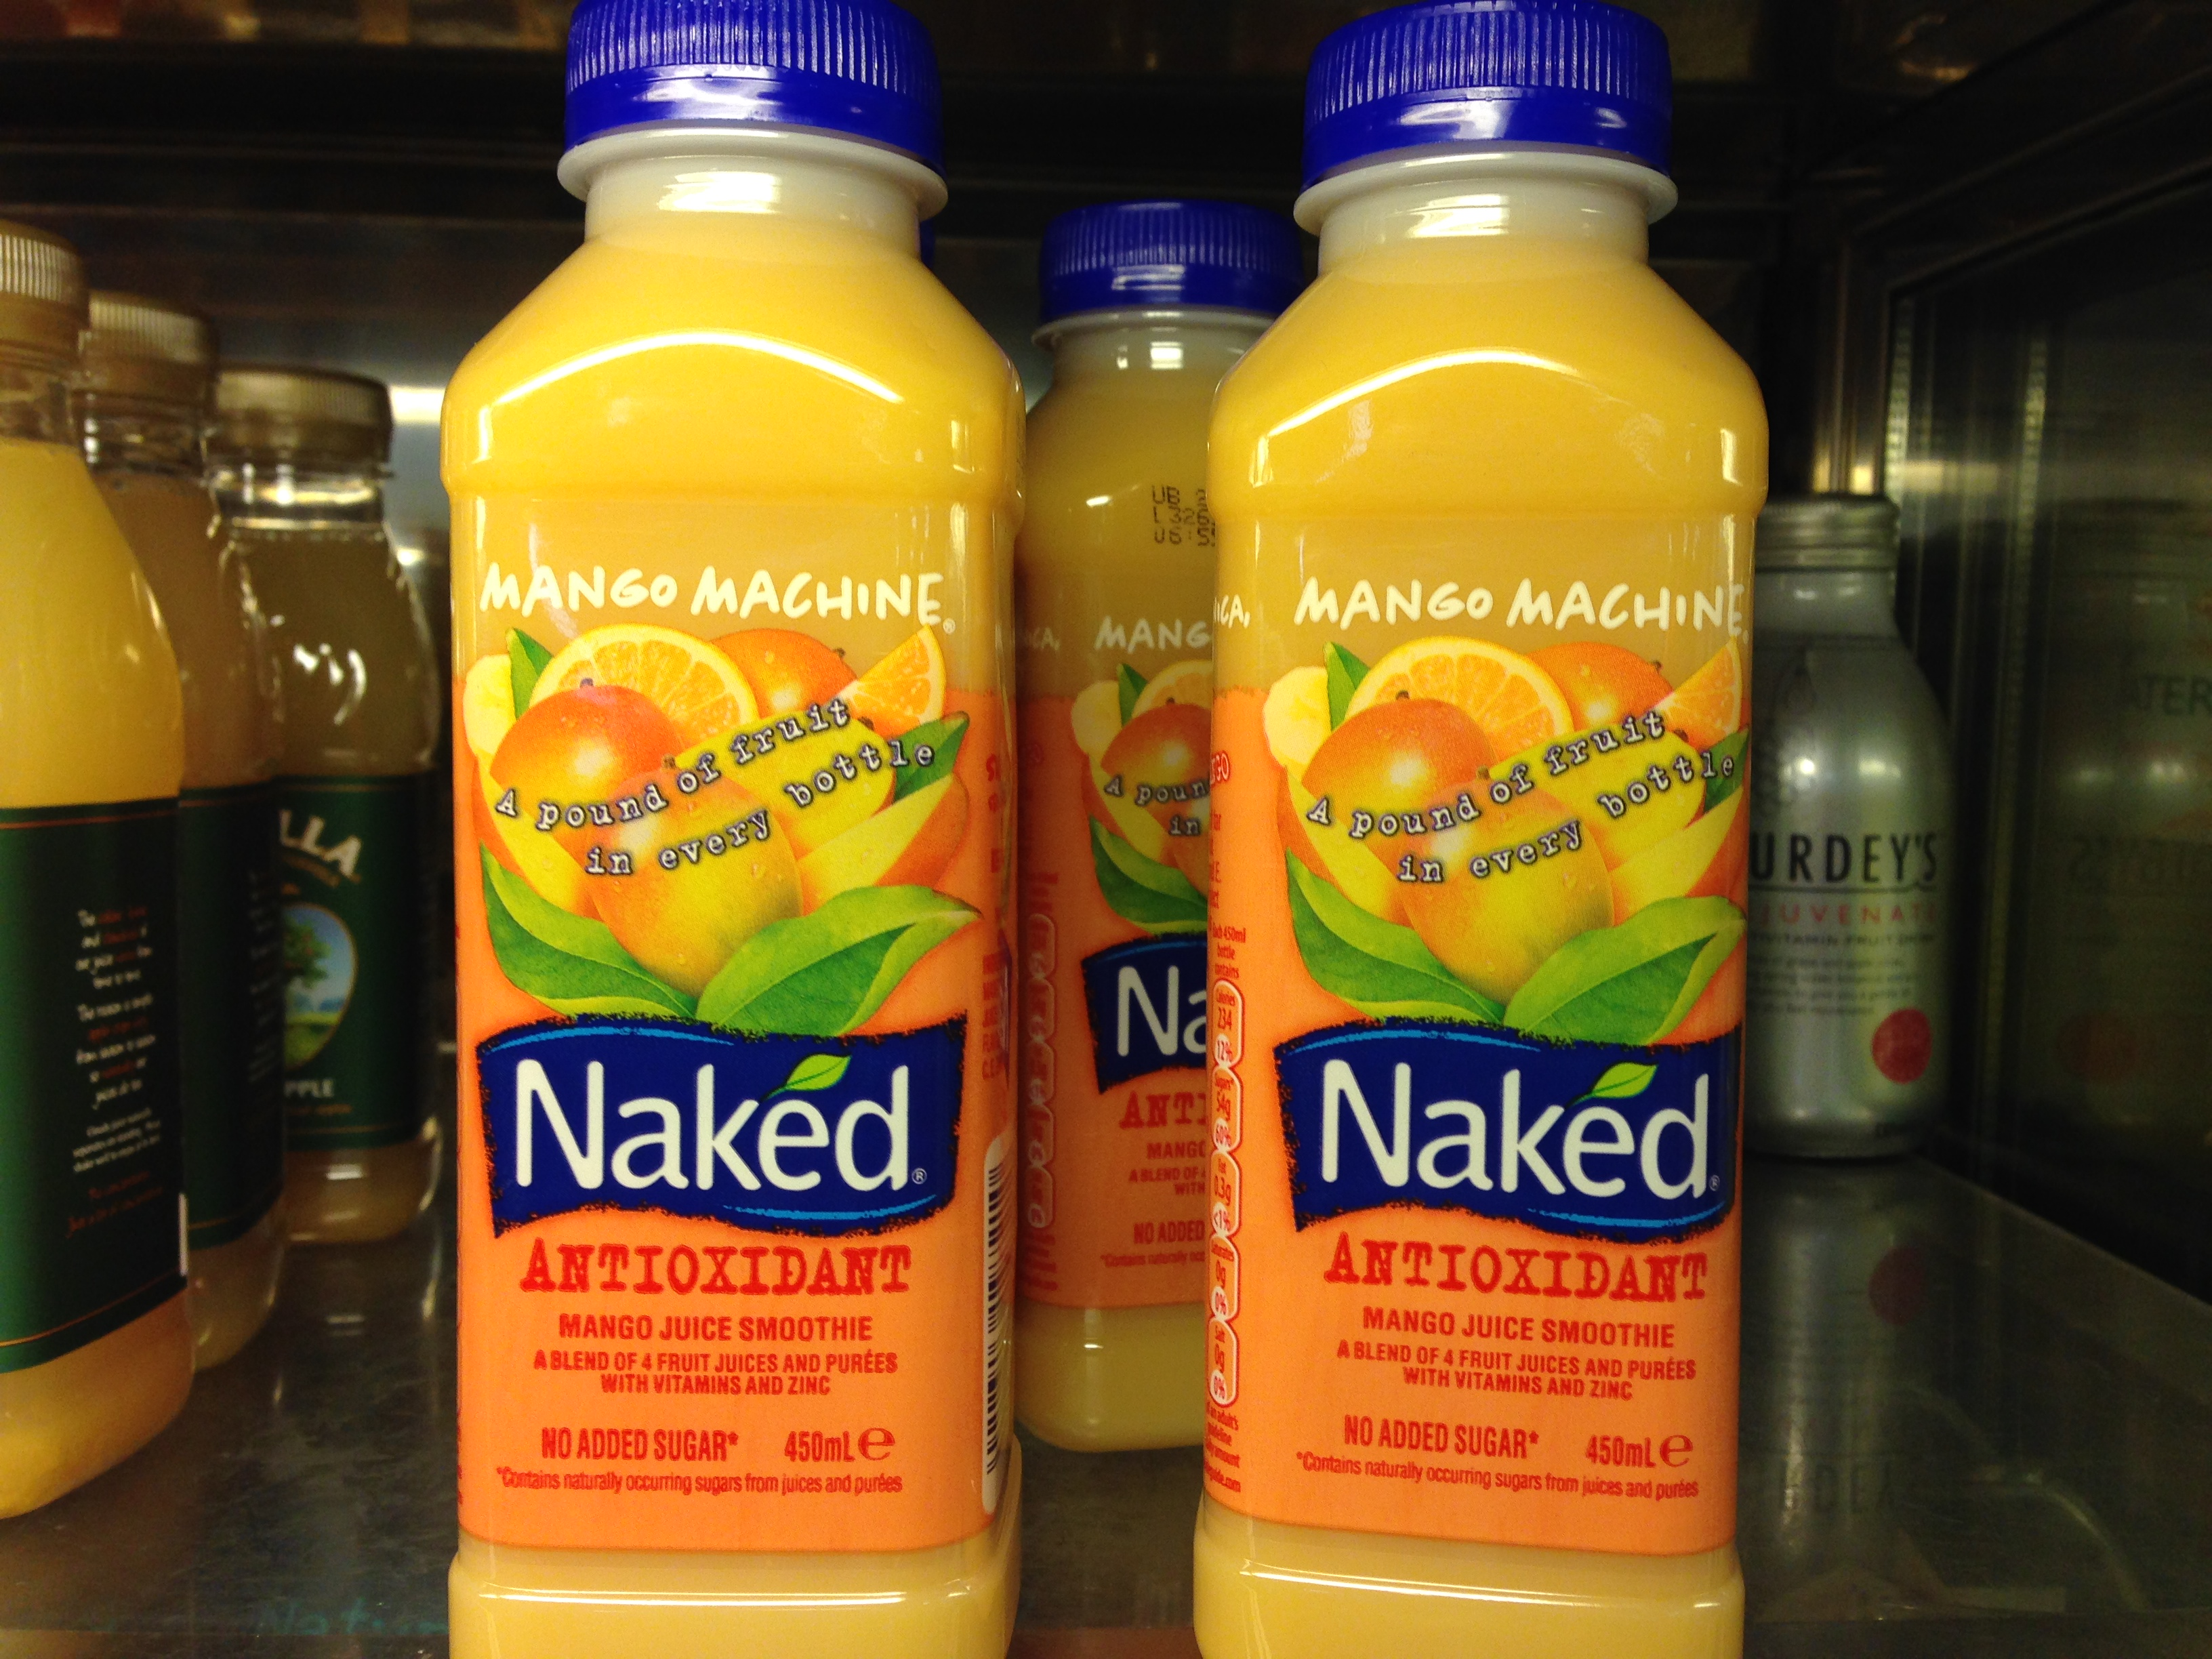 Review It | Naked Mango Machine Smoothie - Review It: www.reviewit.co/review/naked-mango-machine-smoothie